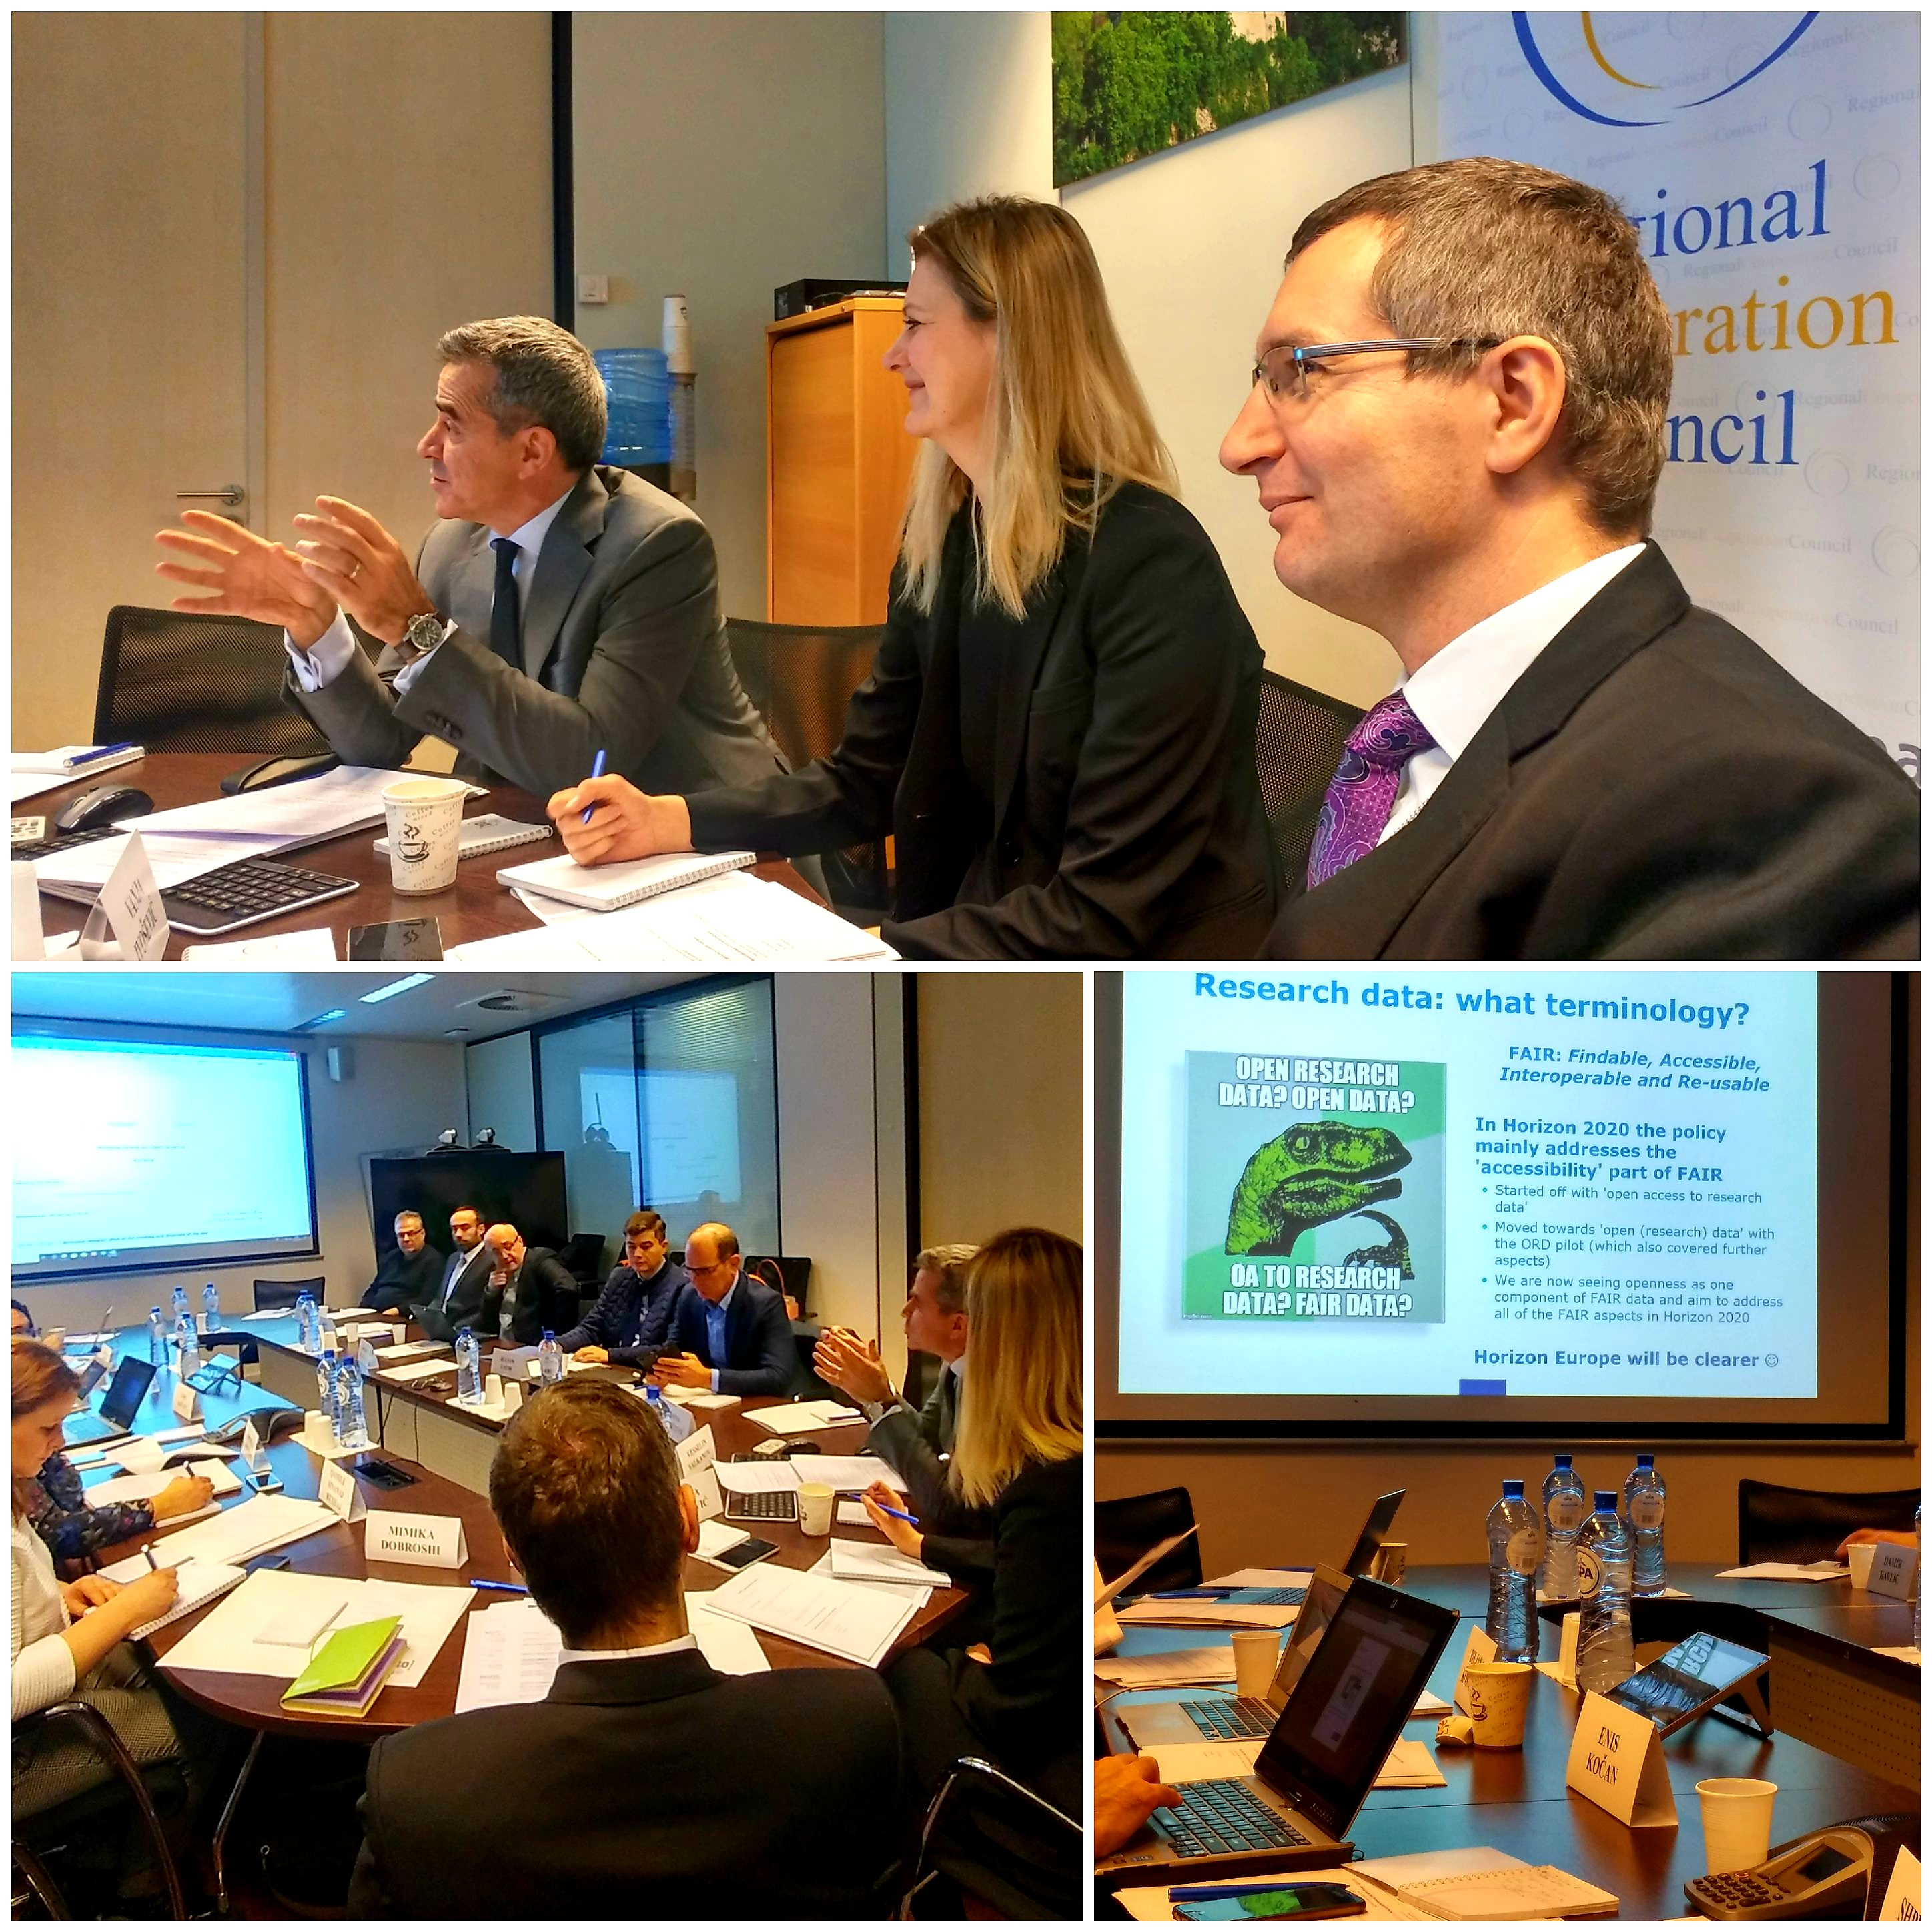 The Western Balkan (WB) economies presented current situation and actions undertaken in the development of Open Science and Open Access policies for research data at the meeting of the Working Group on Open Science, held under the auspices of the RCC in Brussels on 30 January 2019 (Photo: RCC/Mimika Loshi)